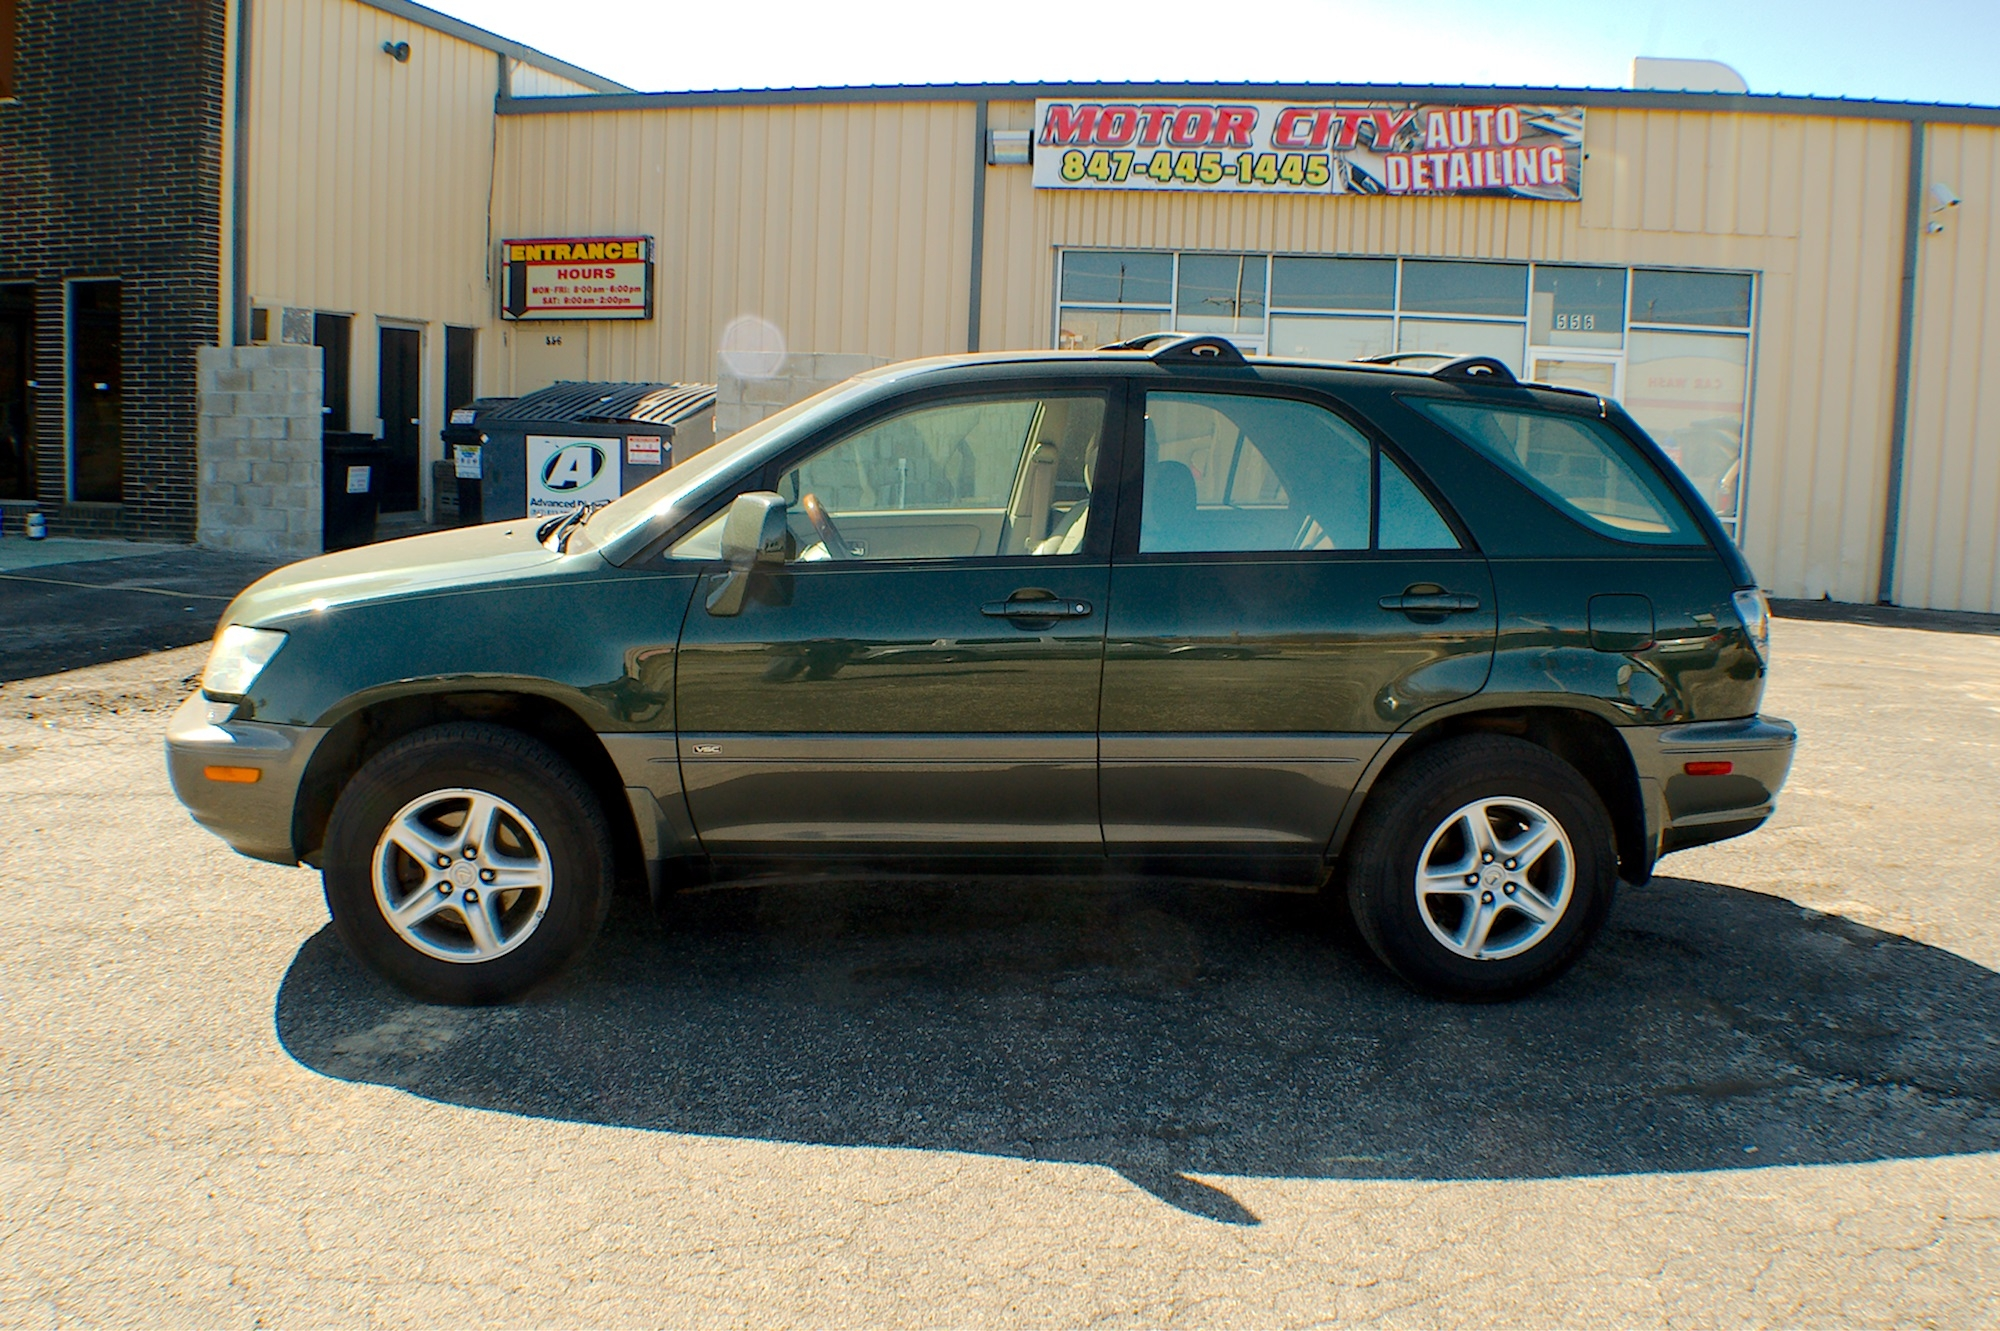 2001 Lexus RX300 Green Used SUV Sale Buffalo Grove Deerfield Fox Lake Antioch